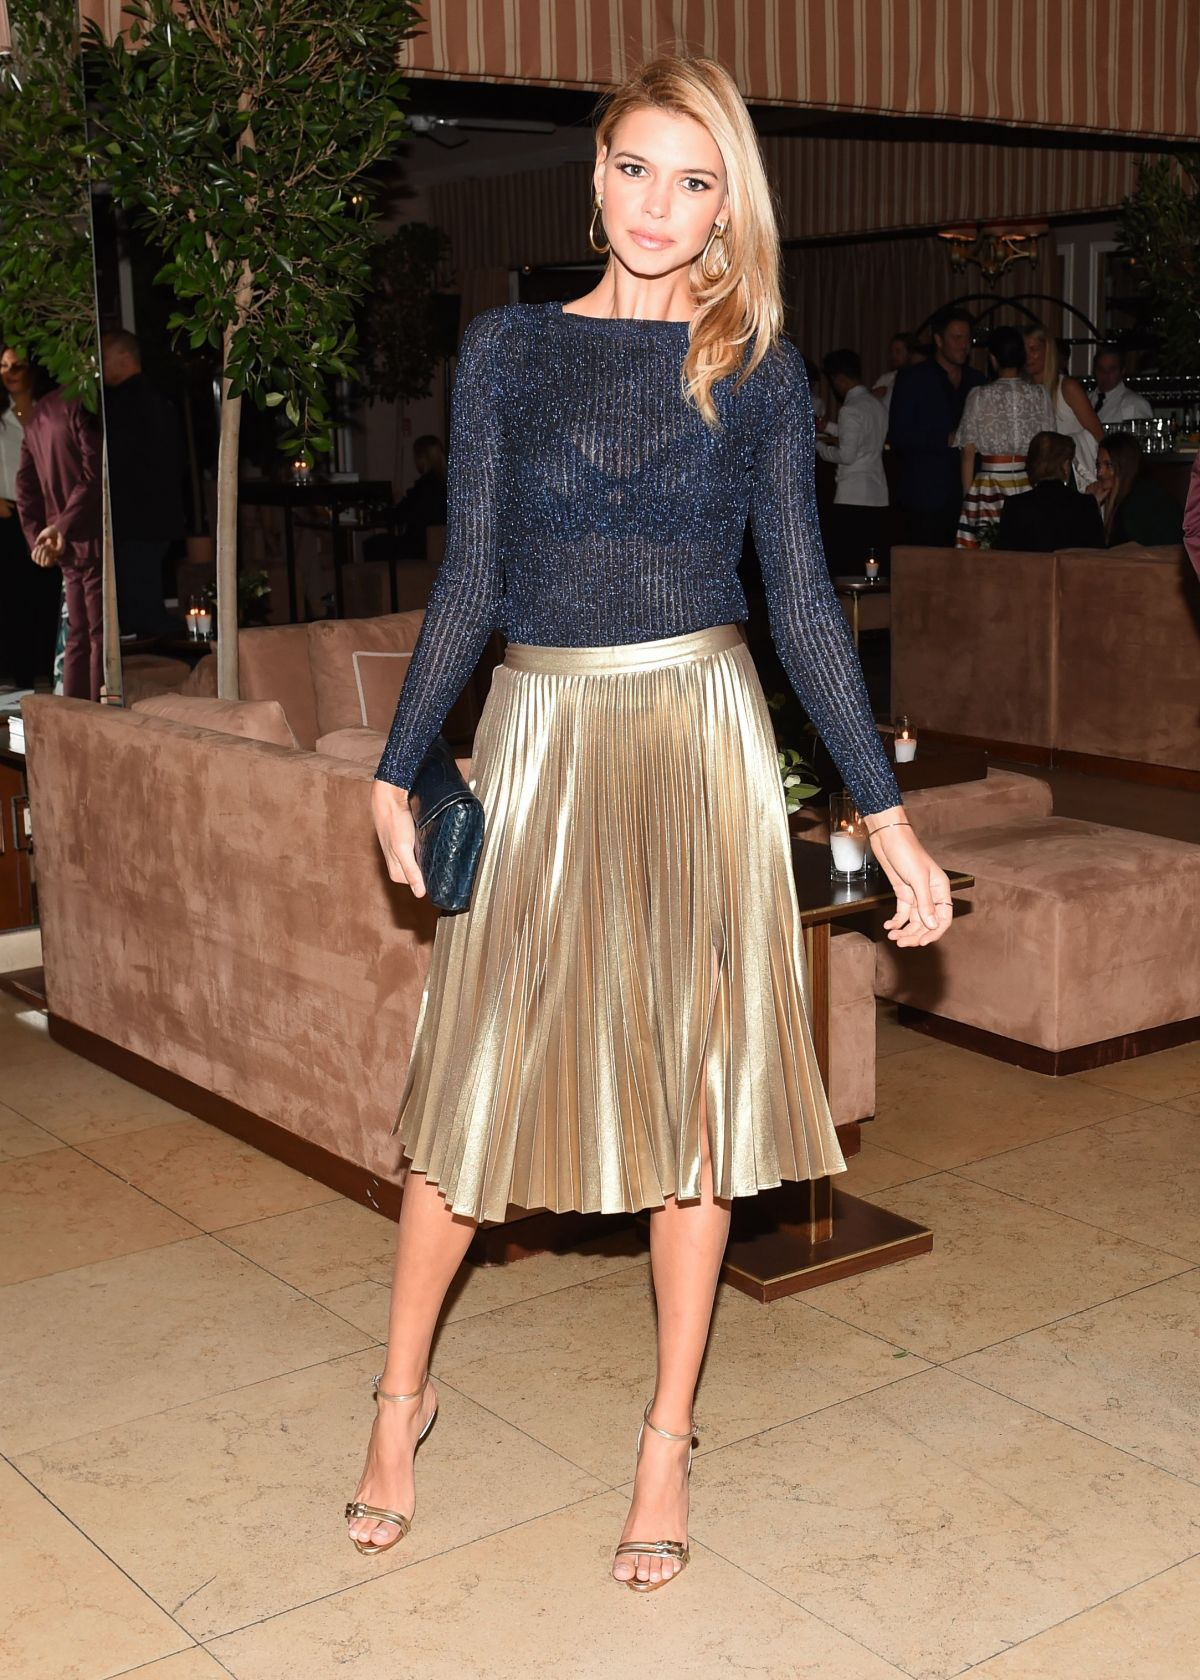 KELLY ROHRBACH at Harper's Bazaar 150 Most Fashionable Women Party in Hollywood 01/27/2017